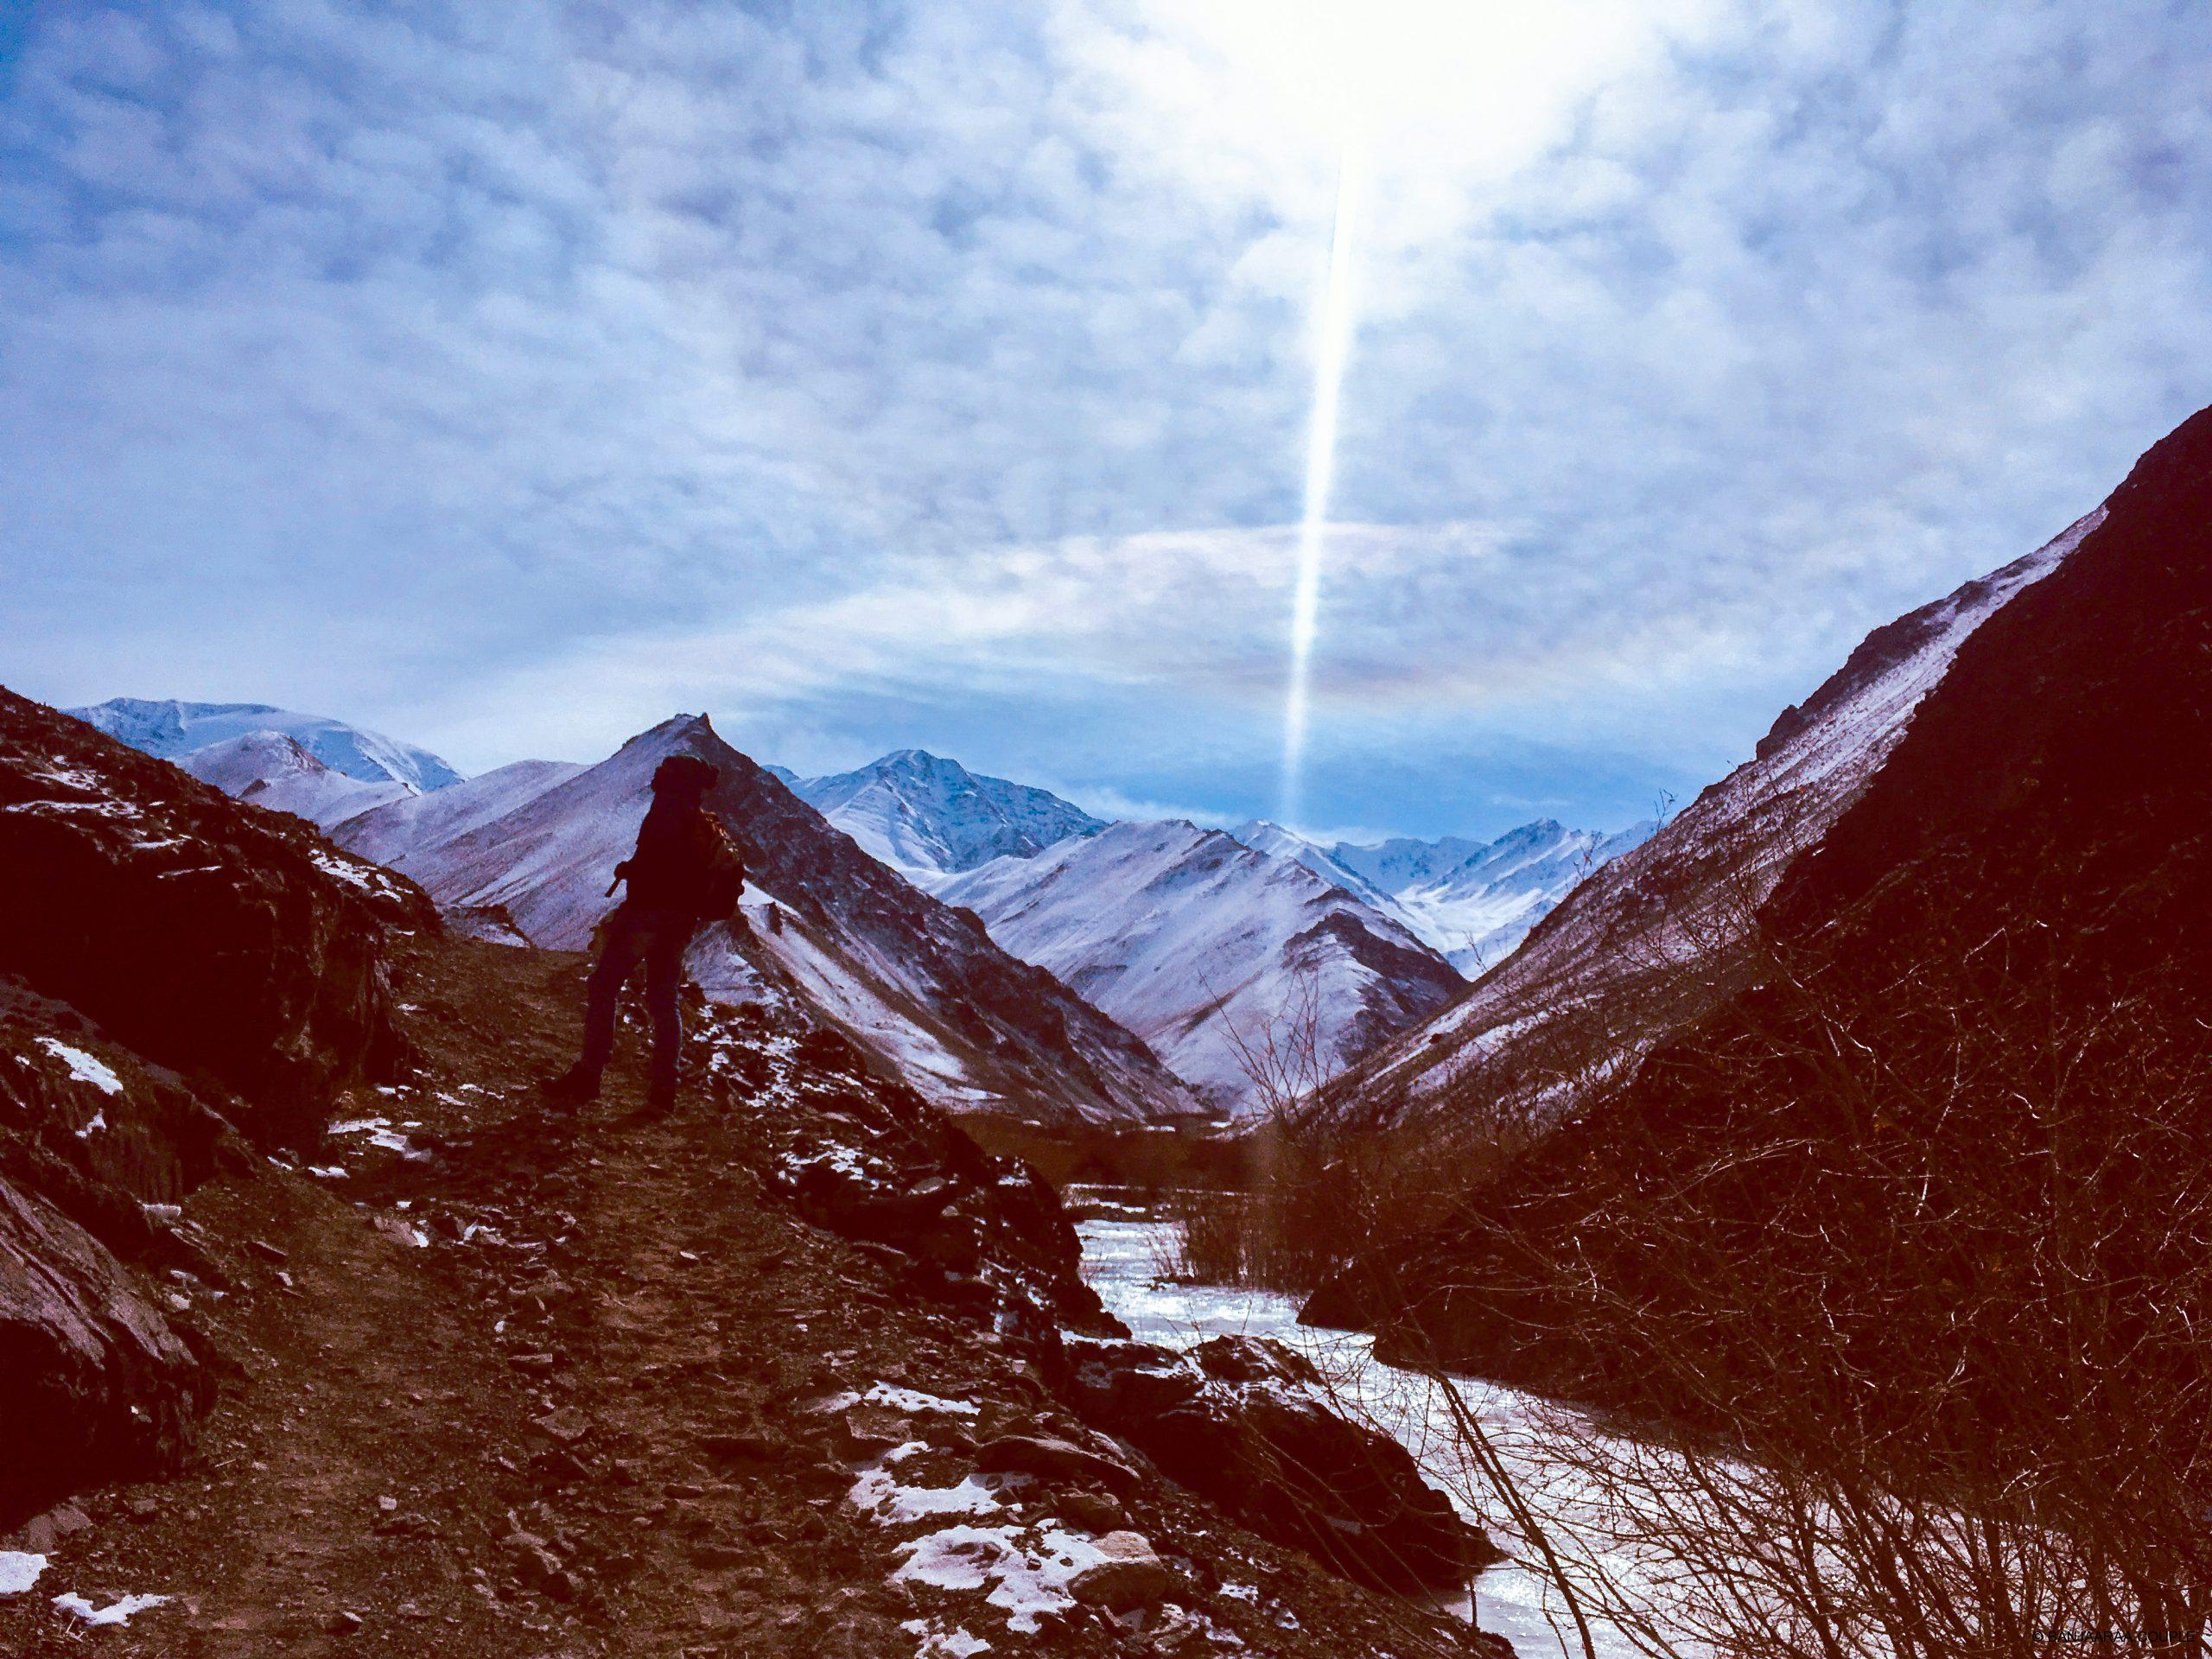 Our trail to Rumbak amidst the beautiful mountains in Hemis Park